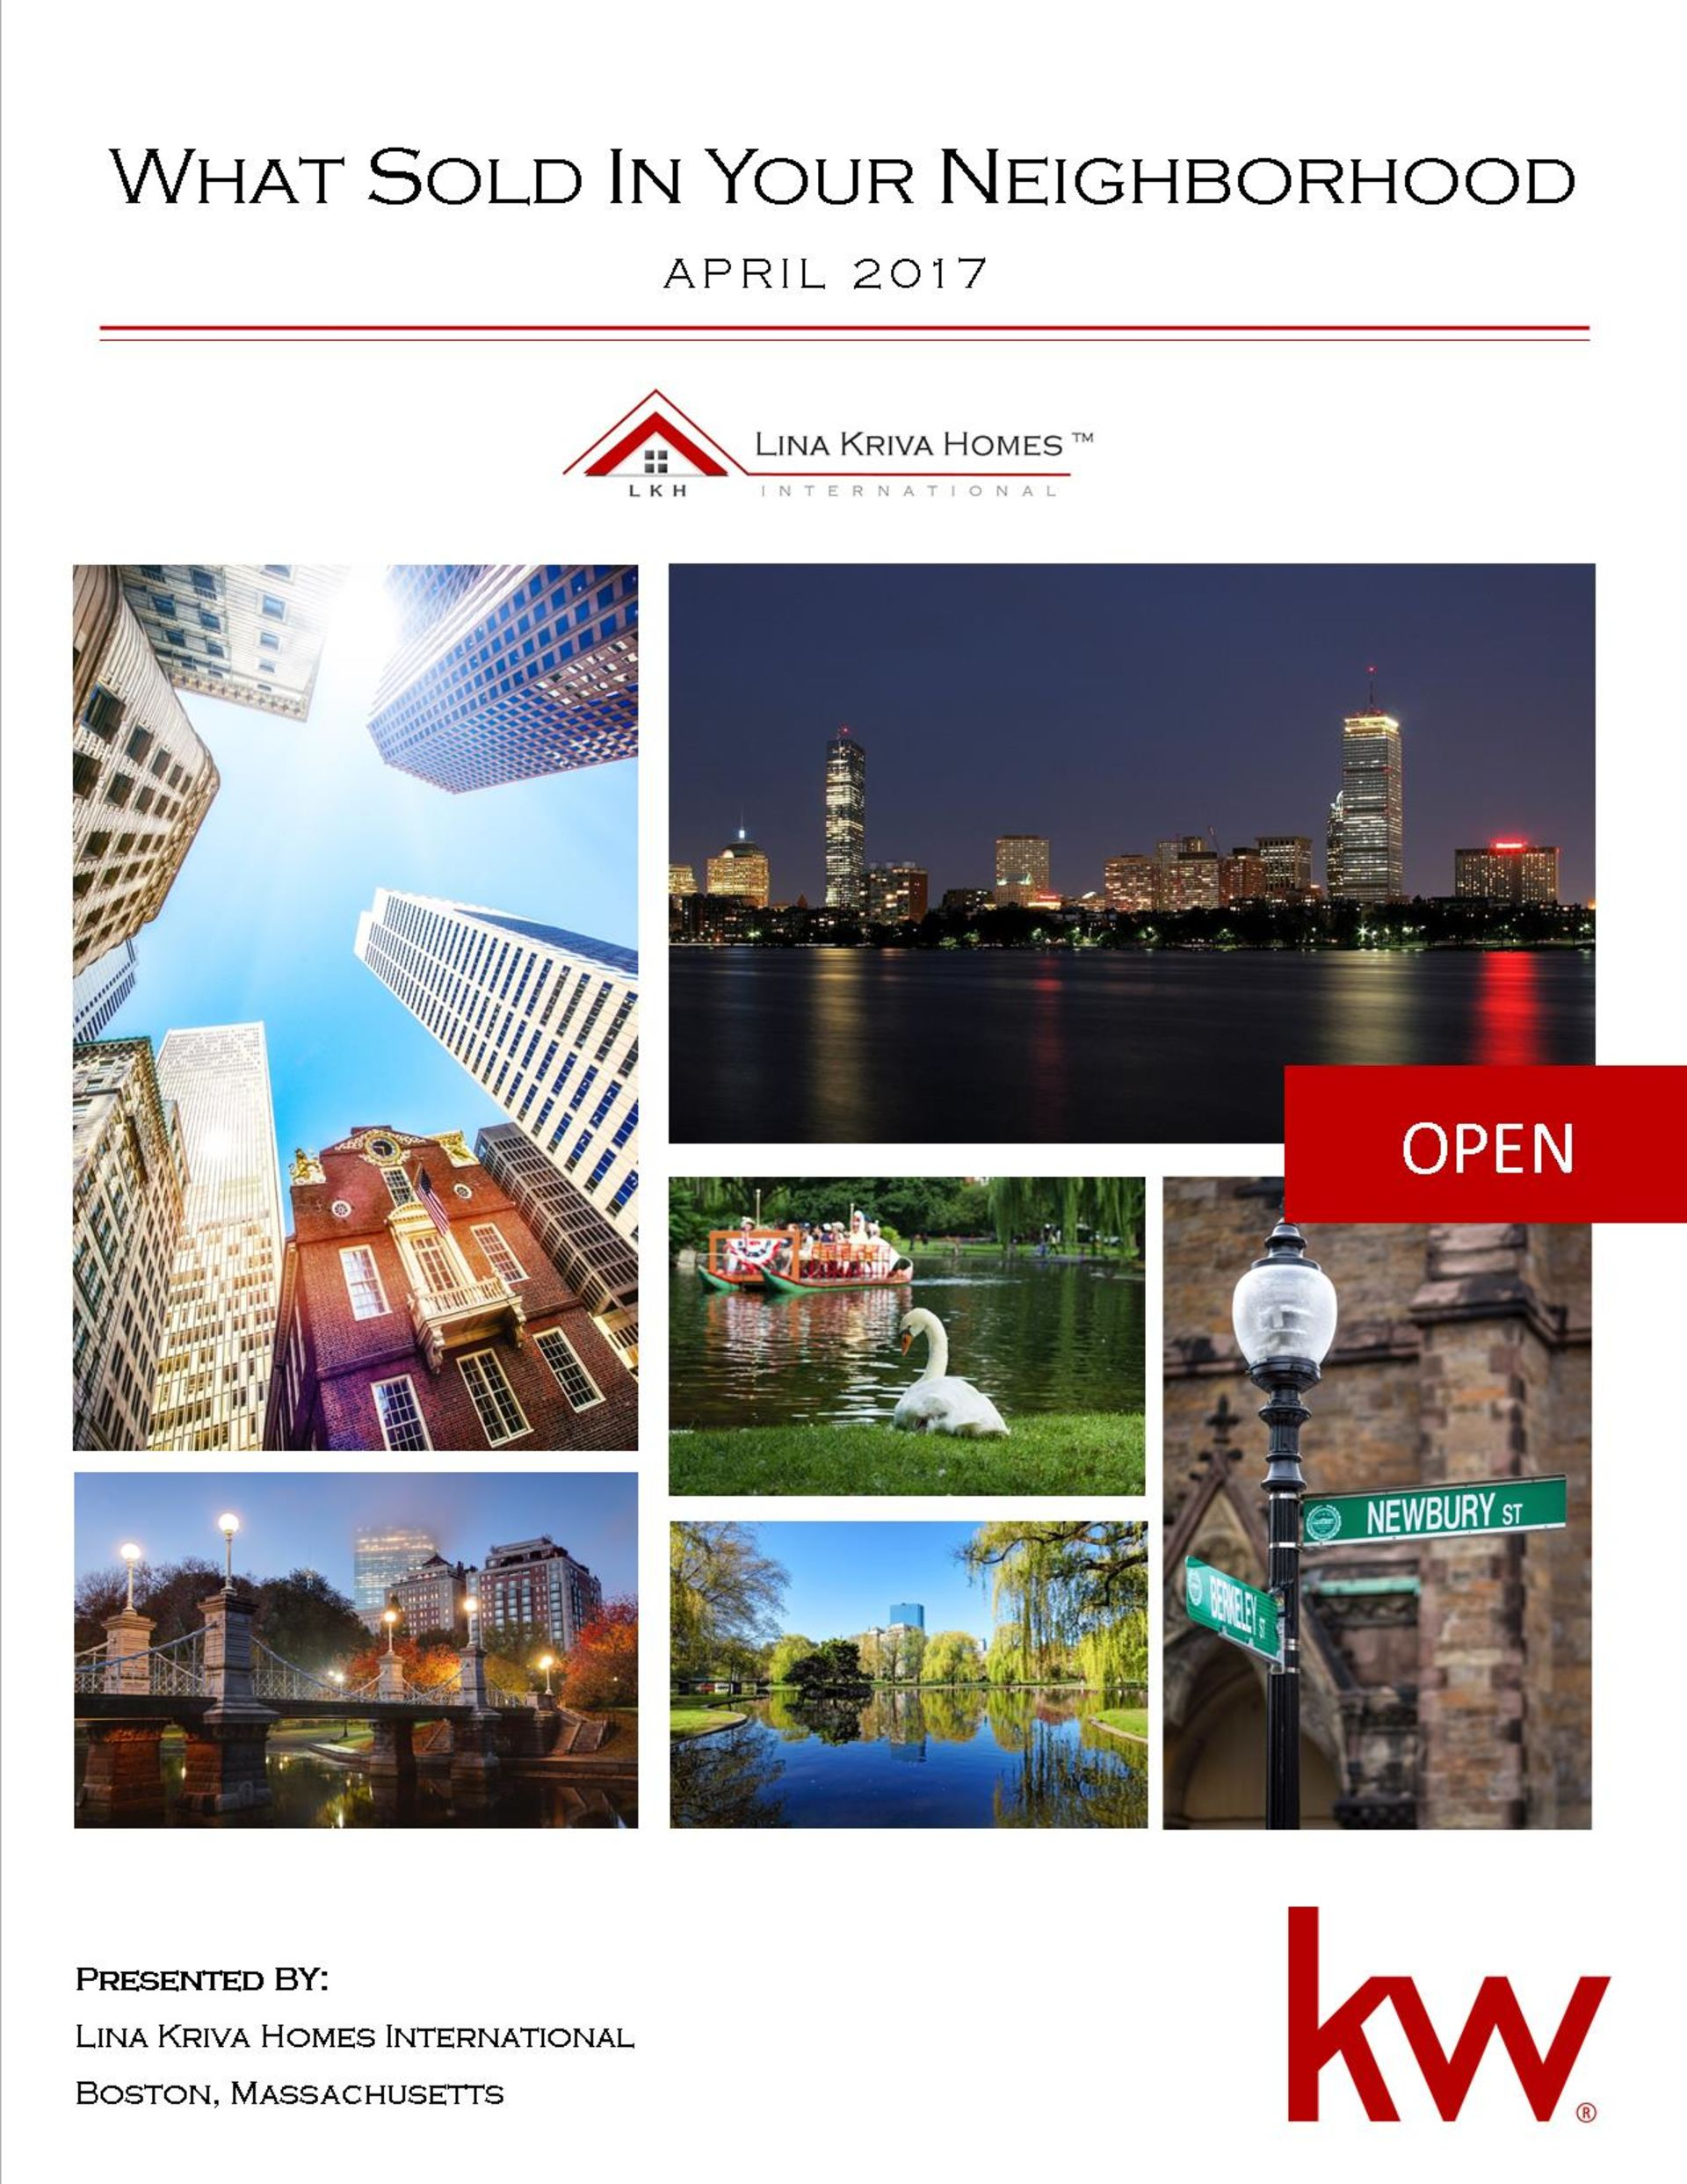 April 2017 – What Sold in Your Neighborhood?